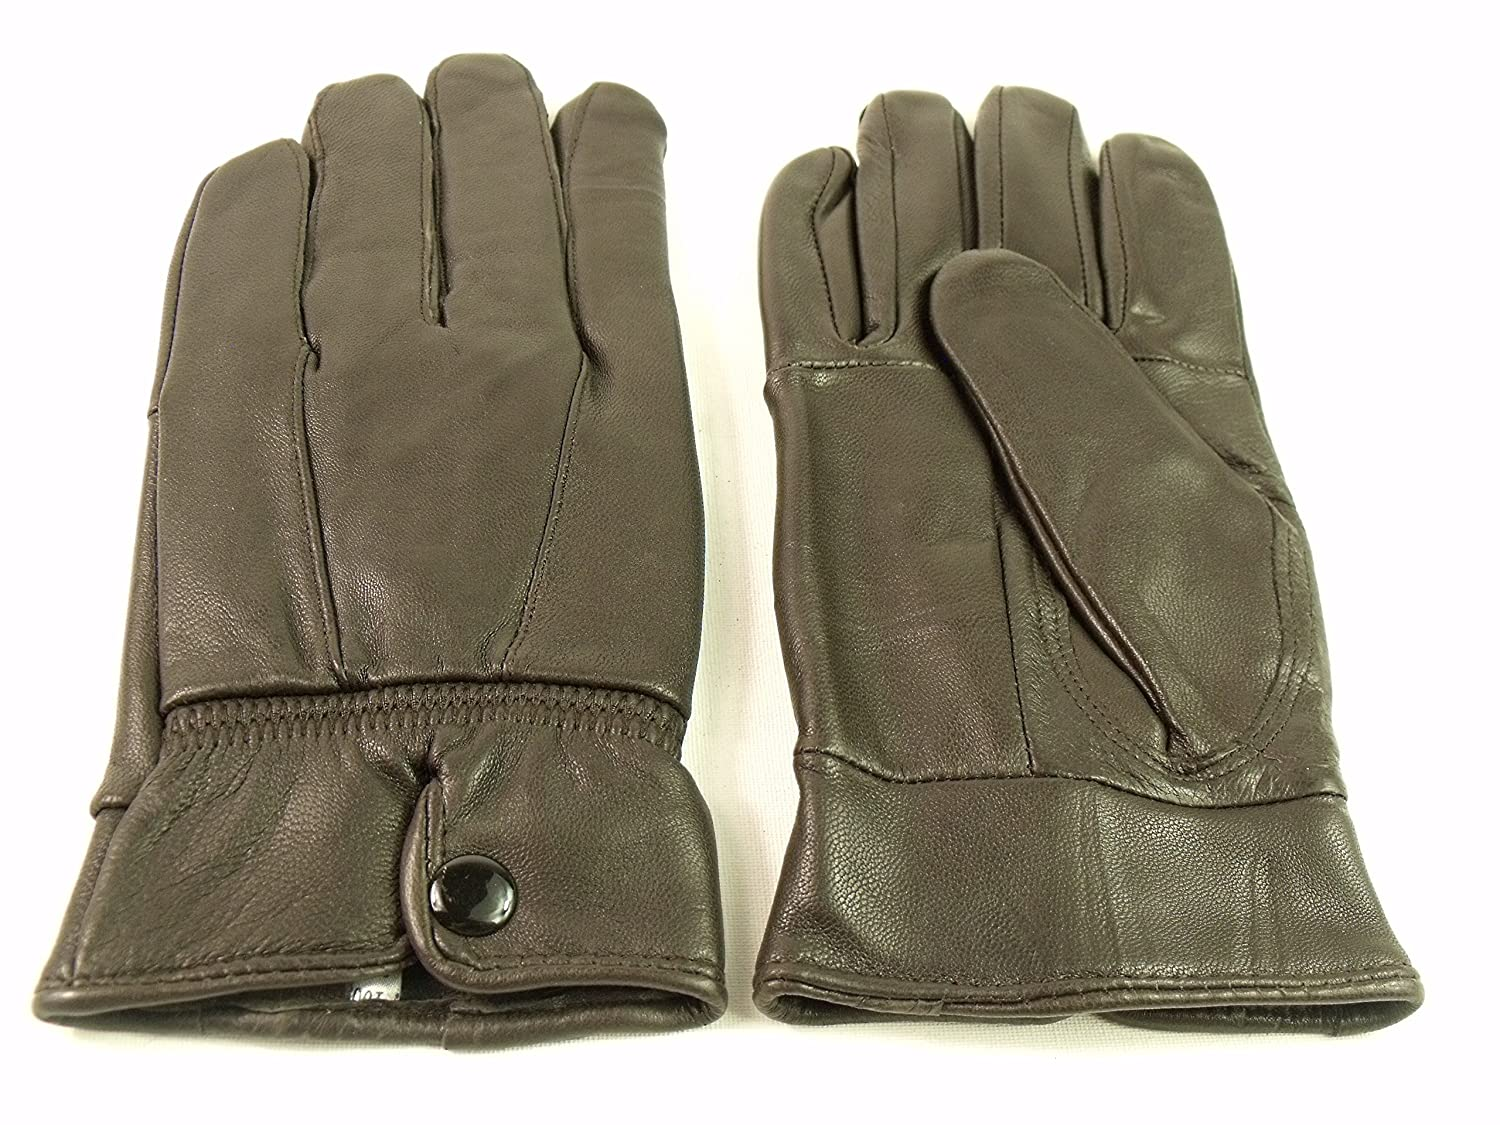 Extra small ladies leather gloves uk - Ladies New Soft Leather Fully Lined Gloves By Lorenz 8910 Small Brown Amazon Co Uk Clothing